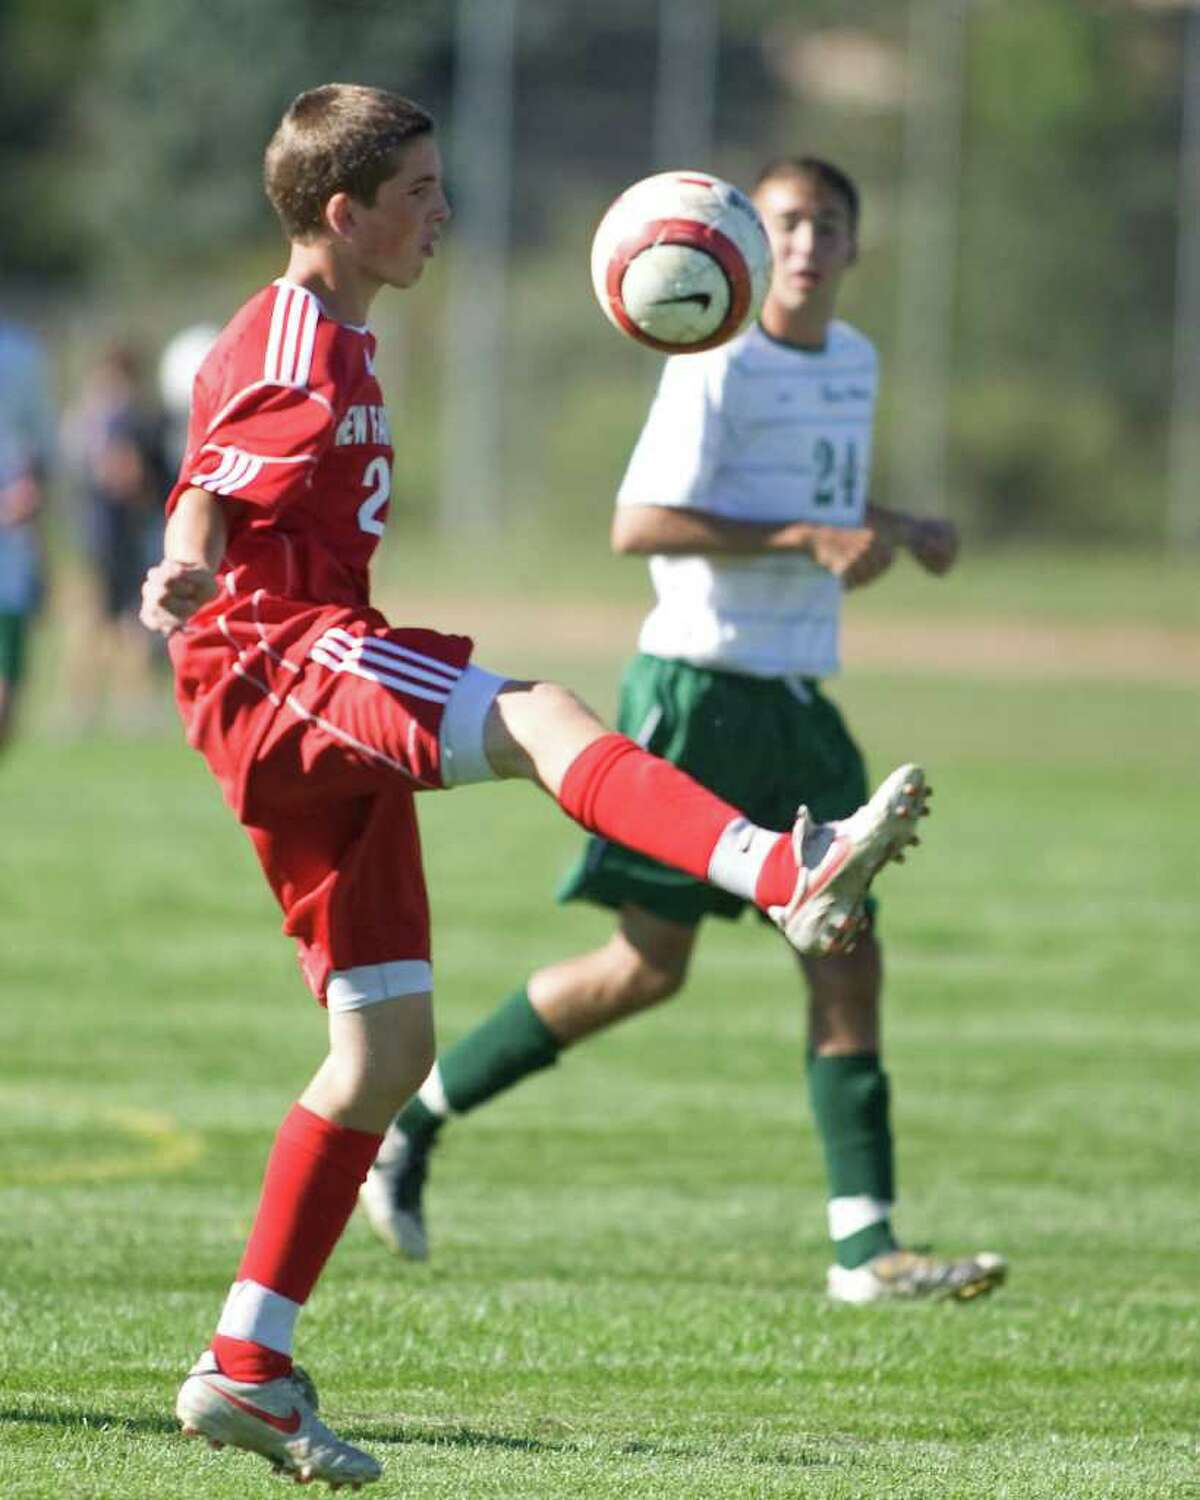 New Fairfield's Dan Silva gains control of the ball against New Milford Tuesday at New Milford High.